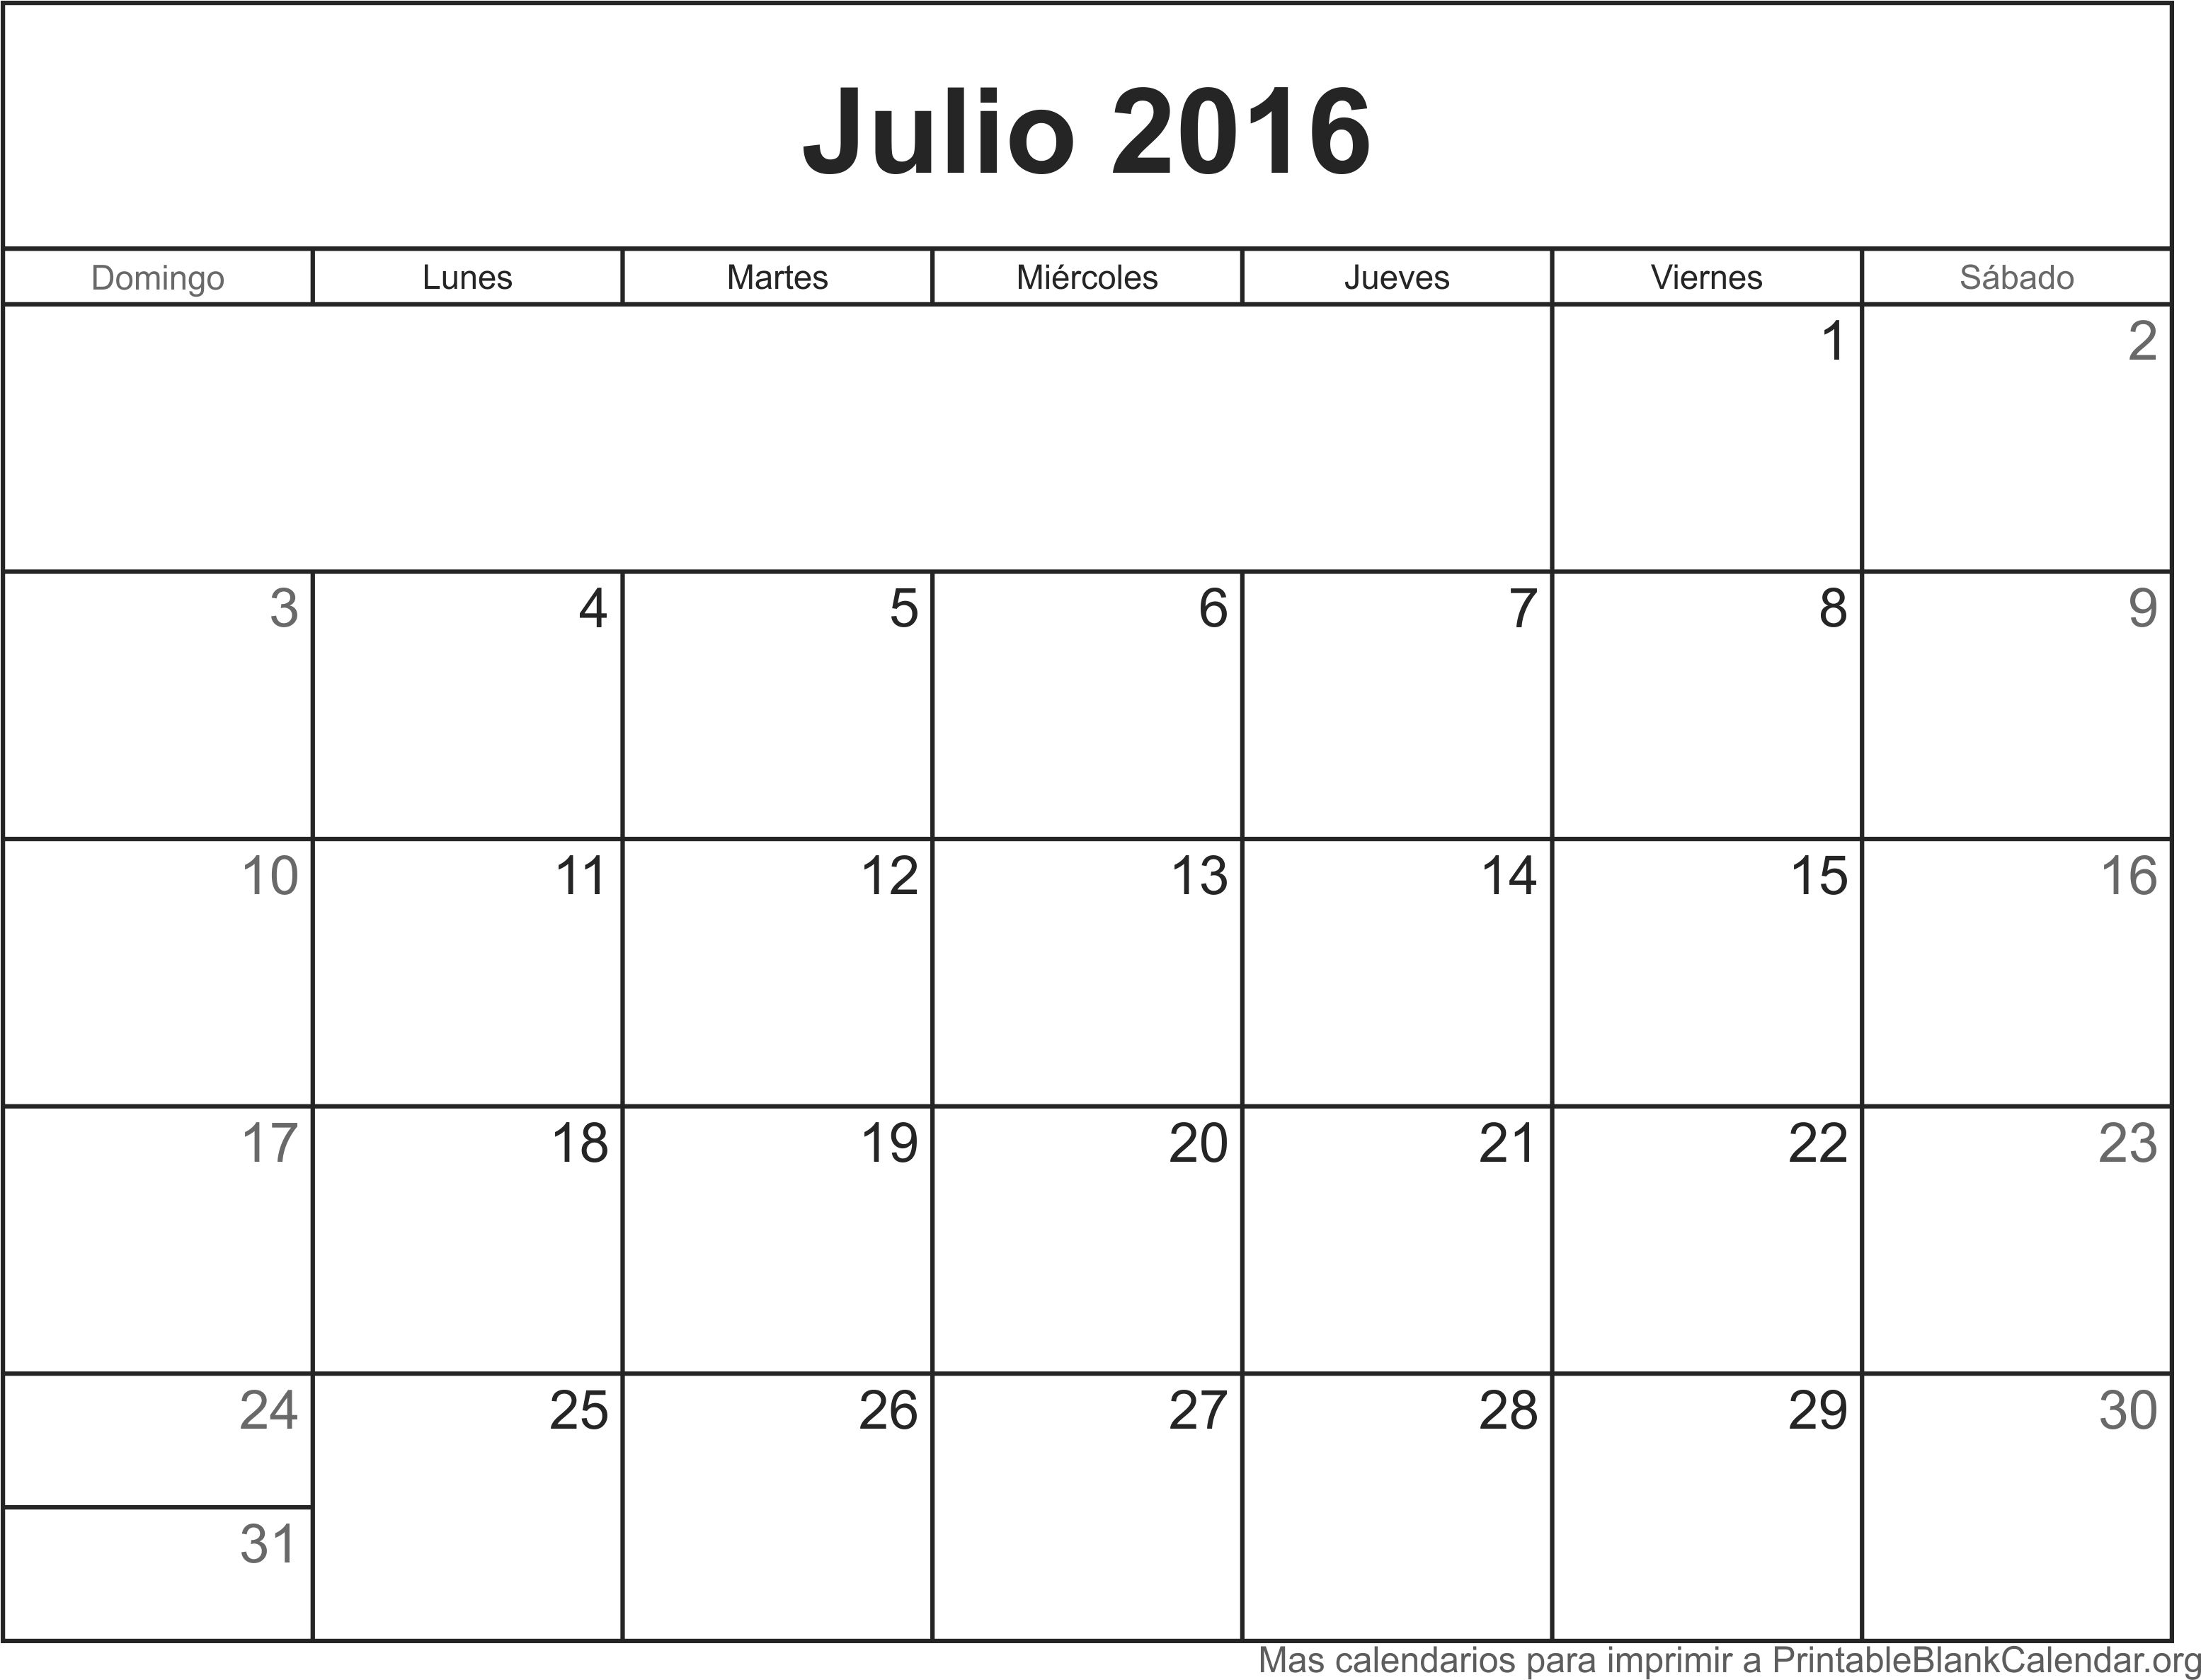 2016 Para Imprimir Related Keywords - Julio Calendario 2016 Para ...